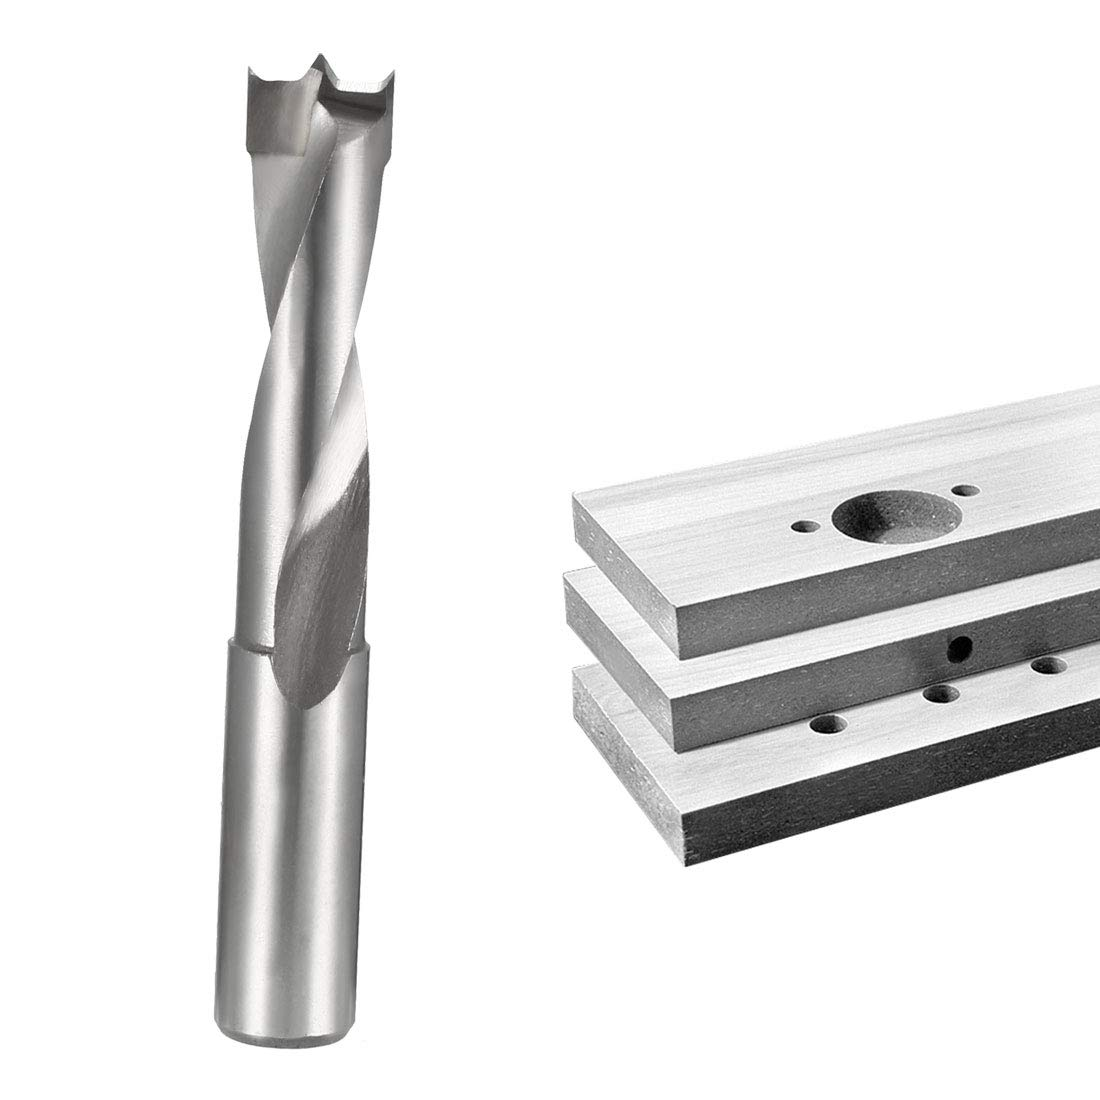 sourcing map Brad Point Drill Bits for Wood 14mm x 68mm Right Turning Carbide for Woodworking Carpentry Drilling Tool